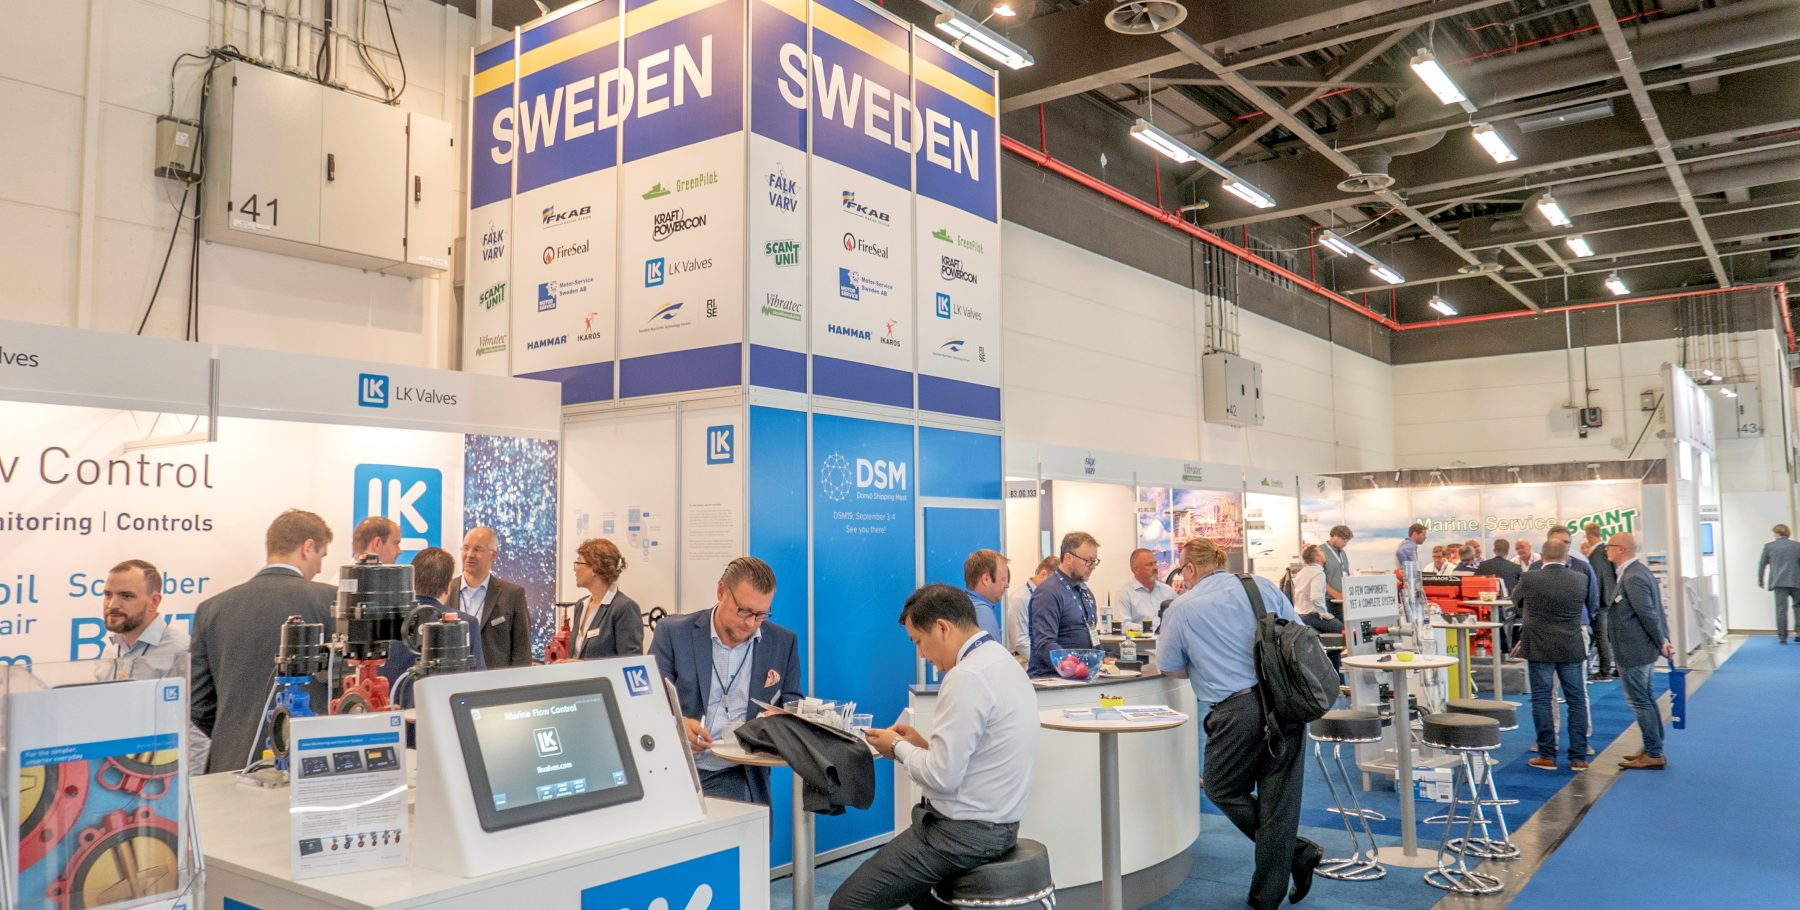 DSM at SMM in Hamburg – Donsö Shipping Meet